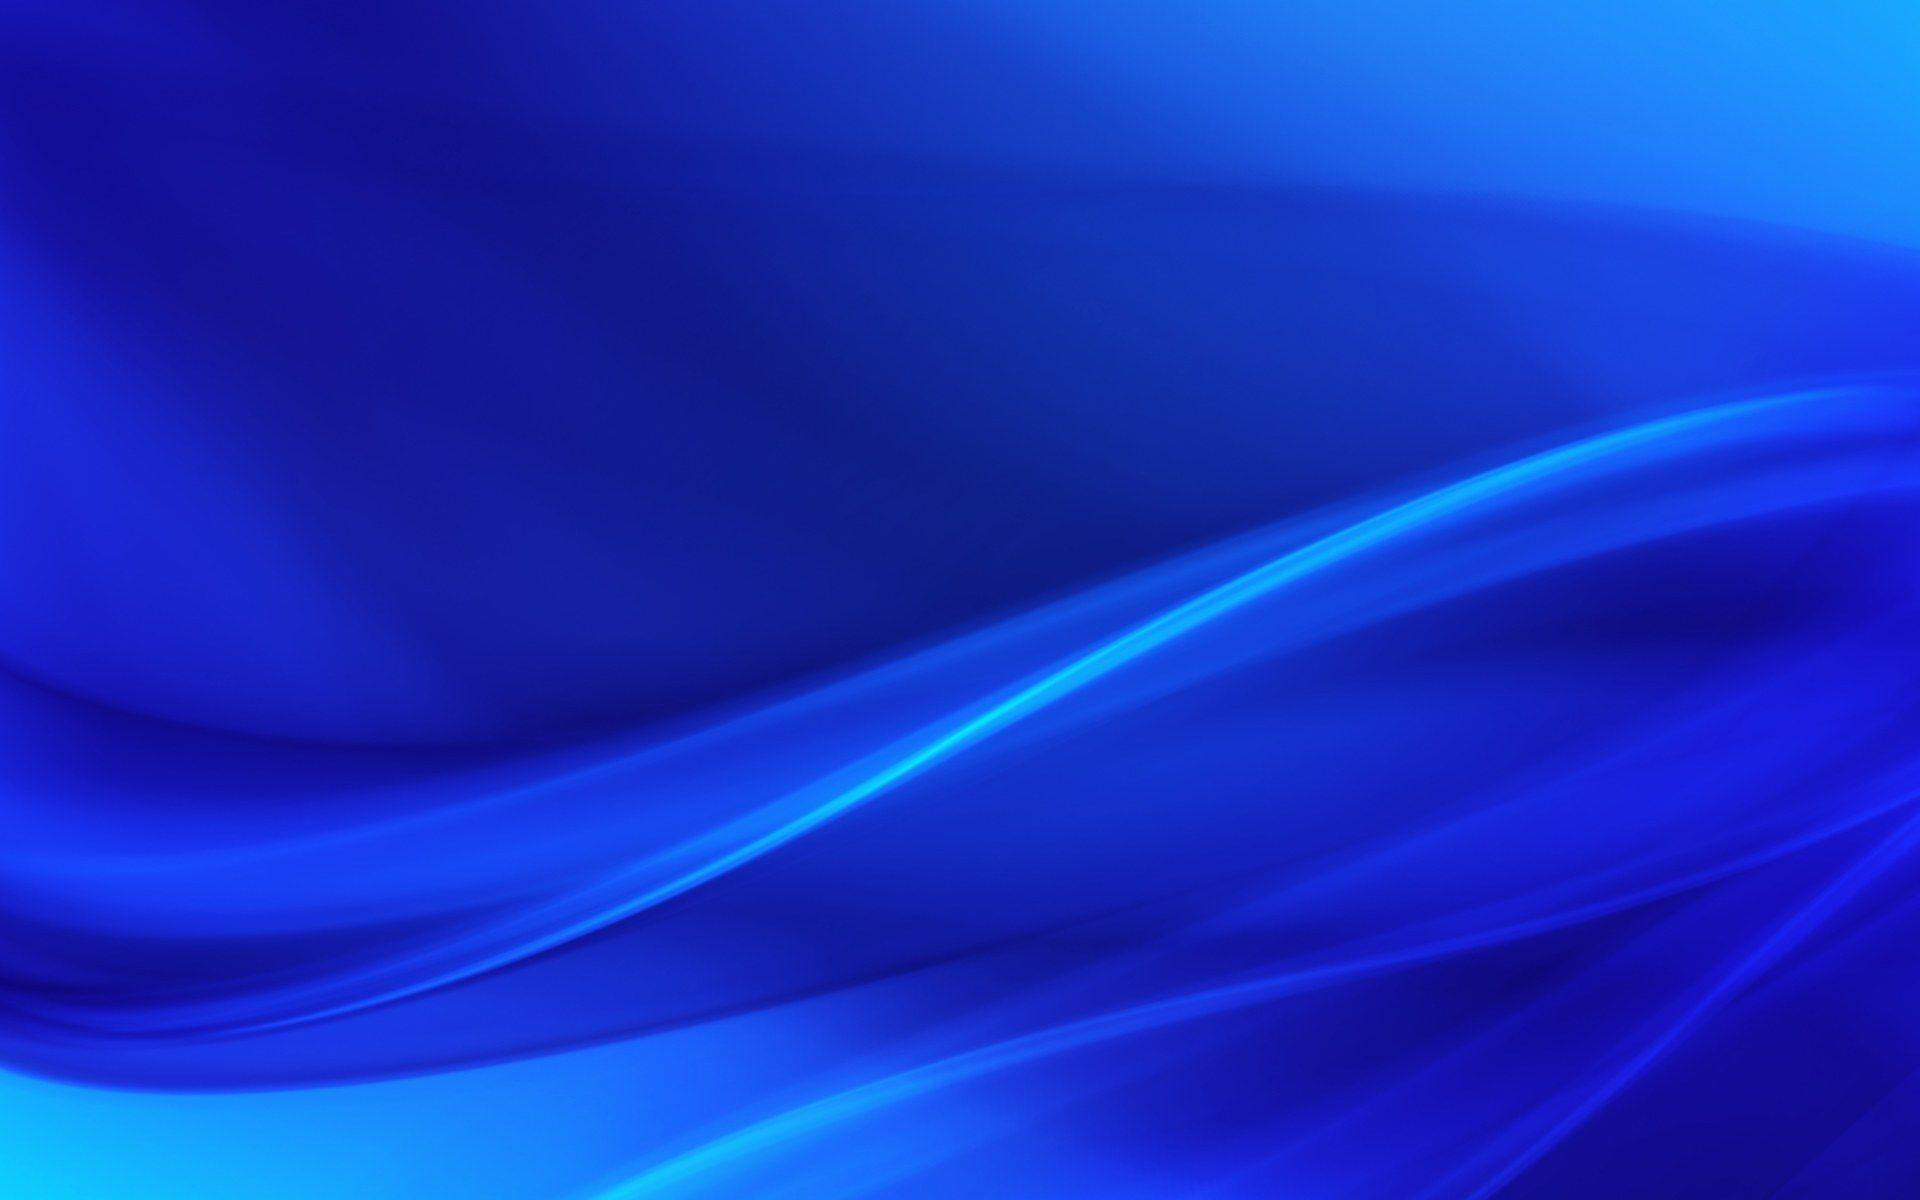 Blue Backgrounds Wallpapers - Wallpaper Cave